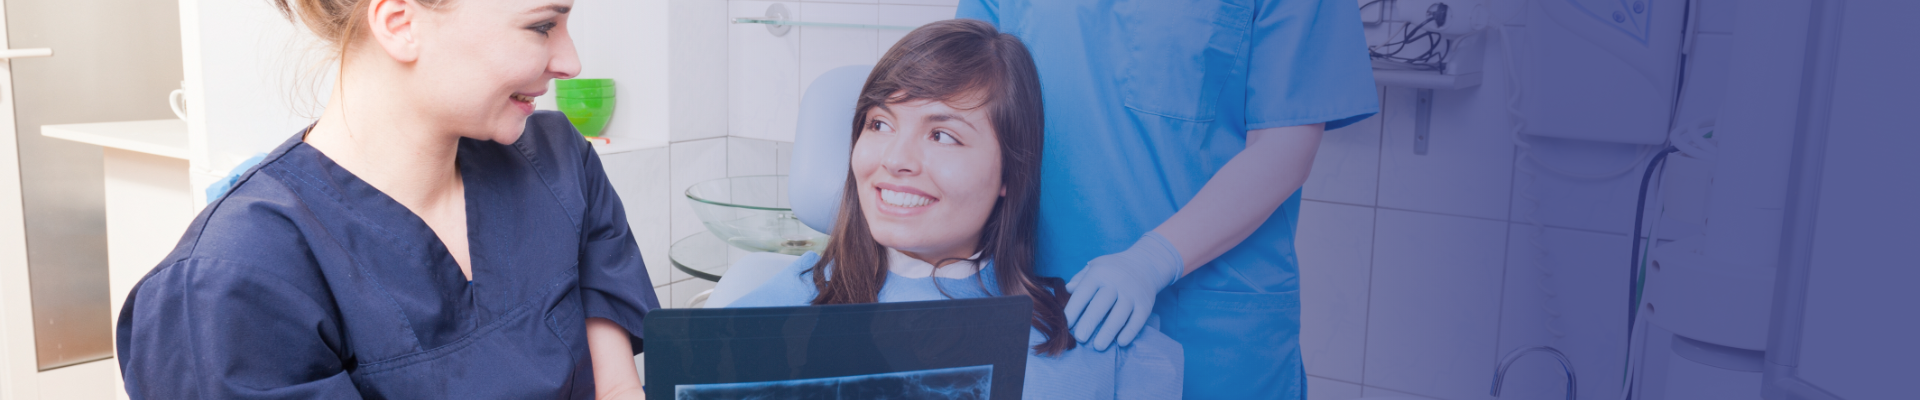 Dentist and assistant showing x ray image to patient